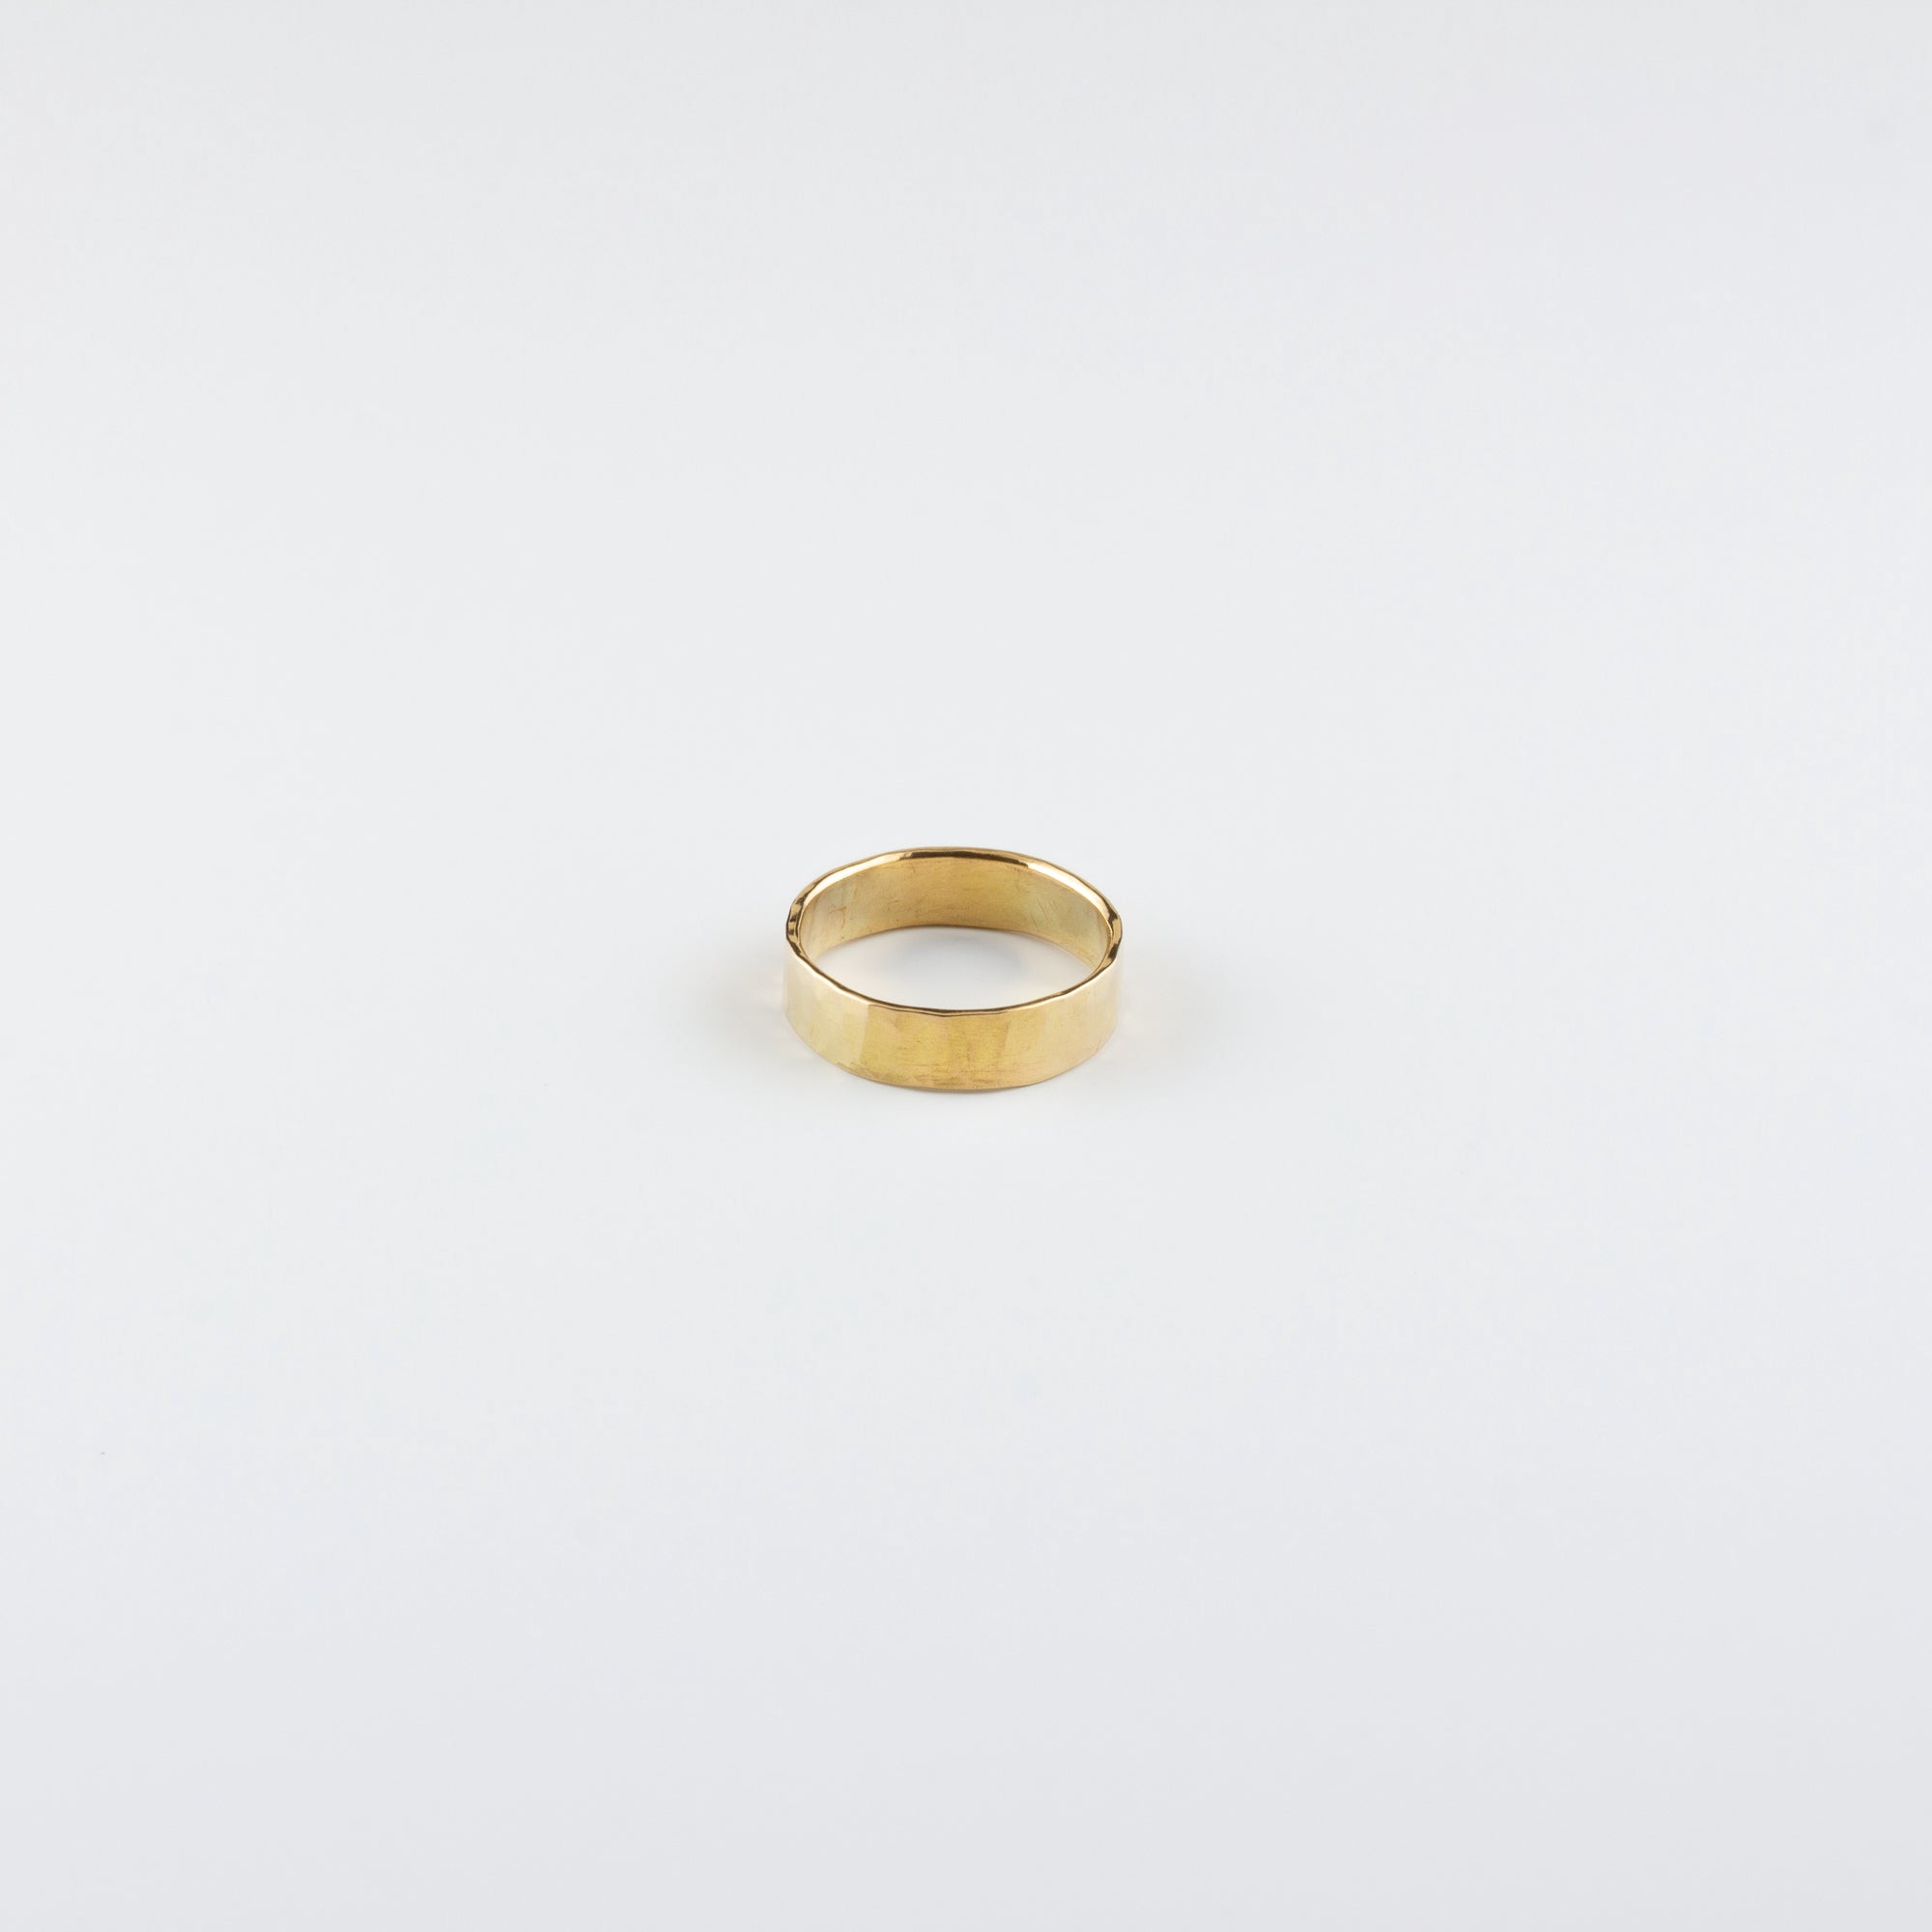 HAND HAMMERED 18K GOLD BAND